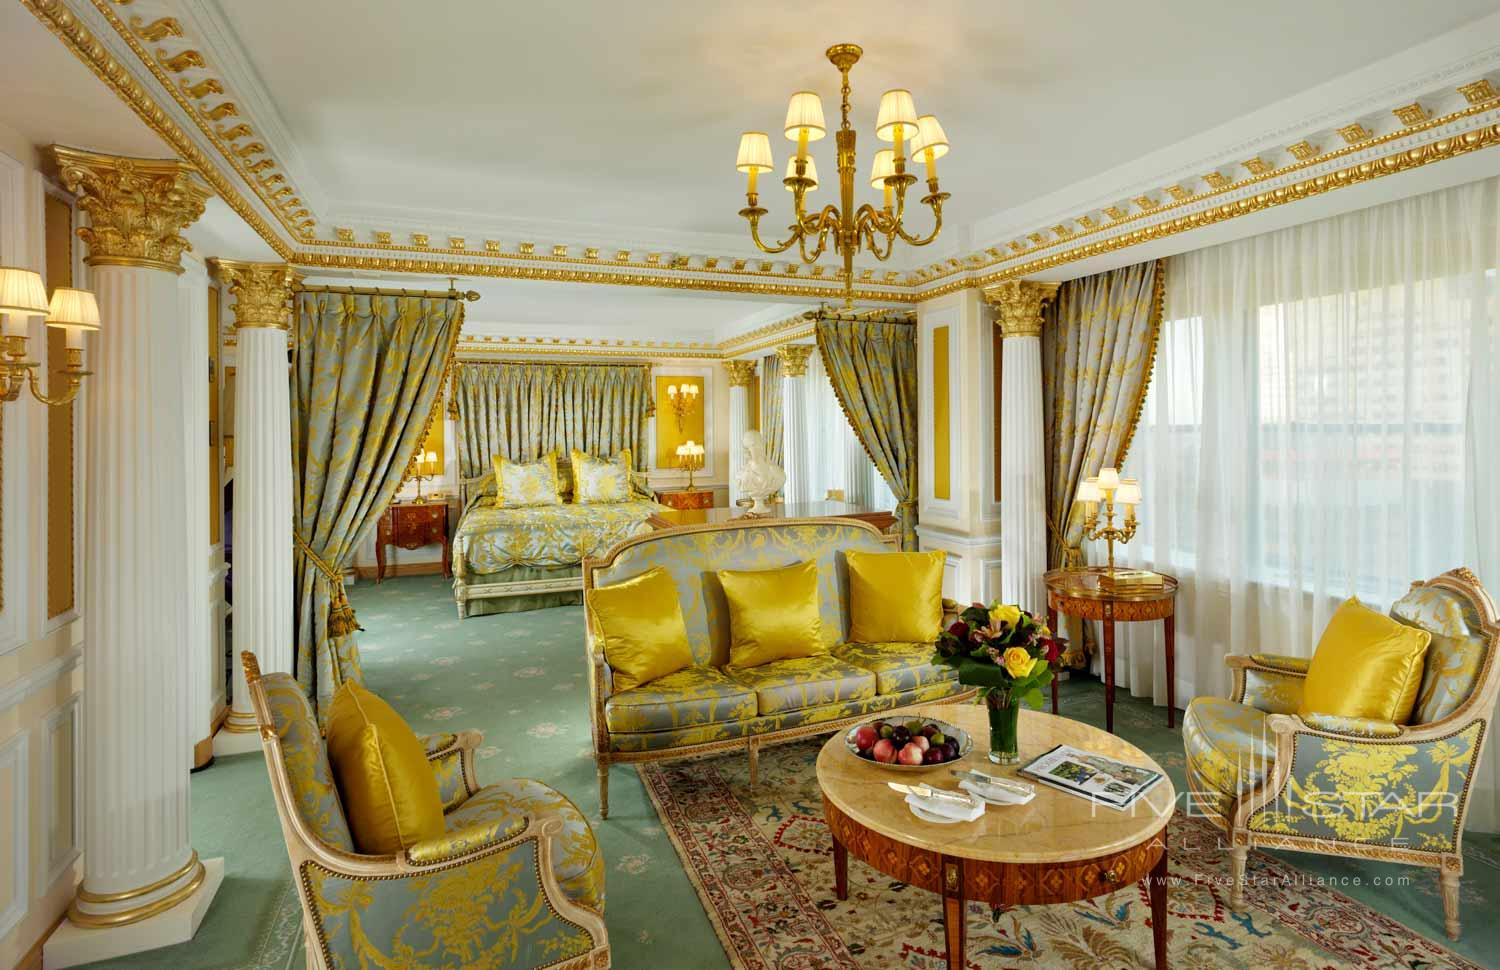 Royal Suite at The Towers at Lotte New York Palace, United States